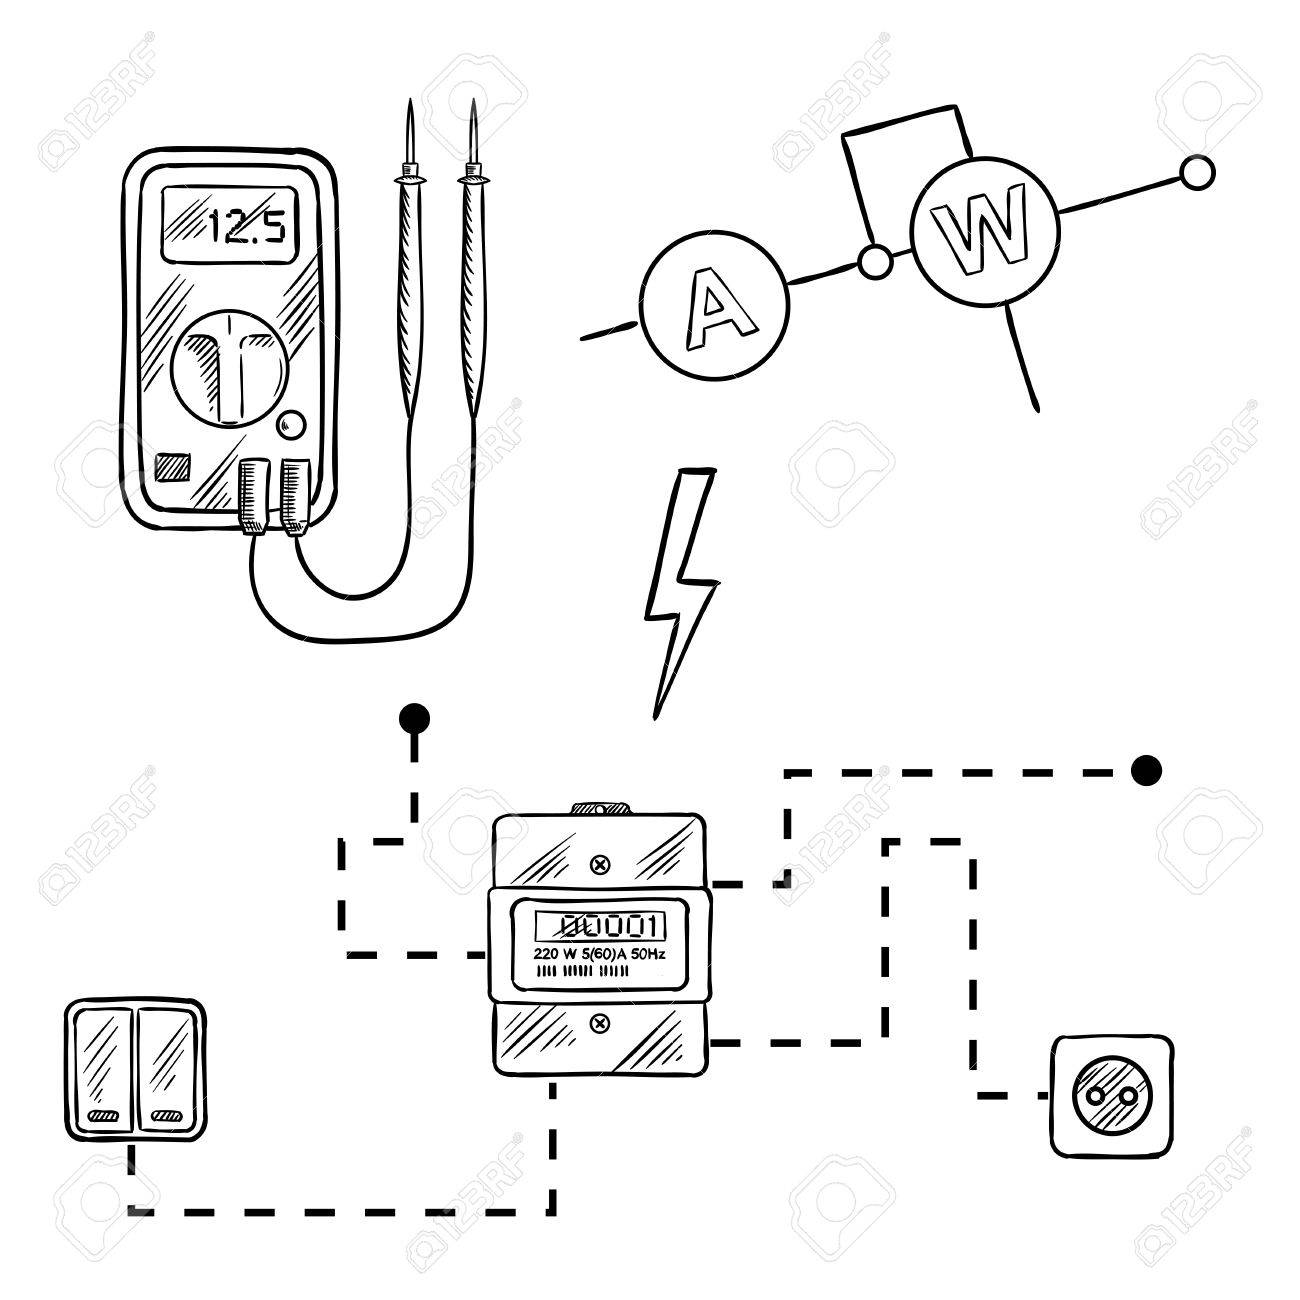 49394540 digital voltmeter electricity meter with socket and switches electrical circuit diagram sketch icons stock vector